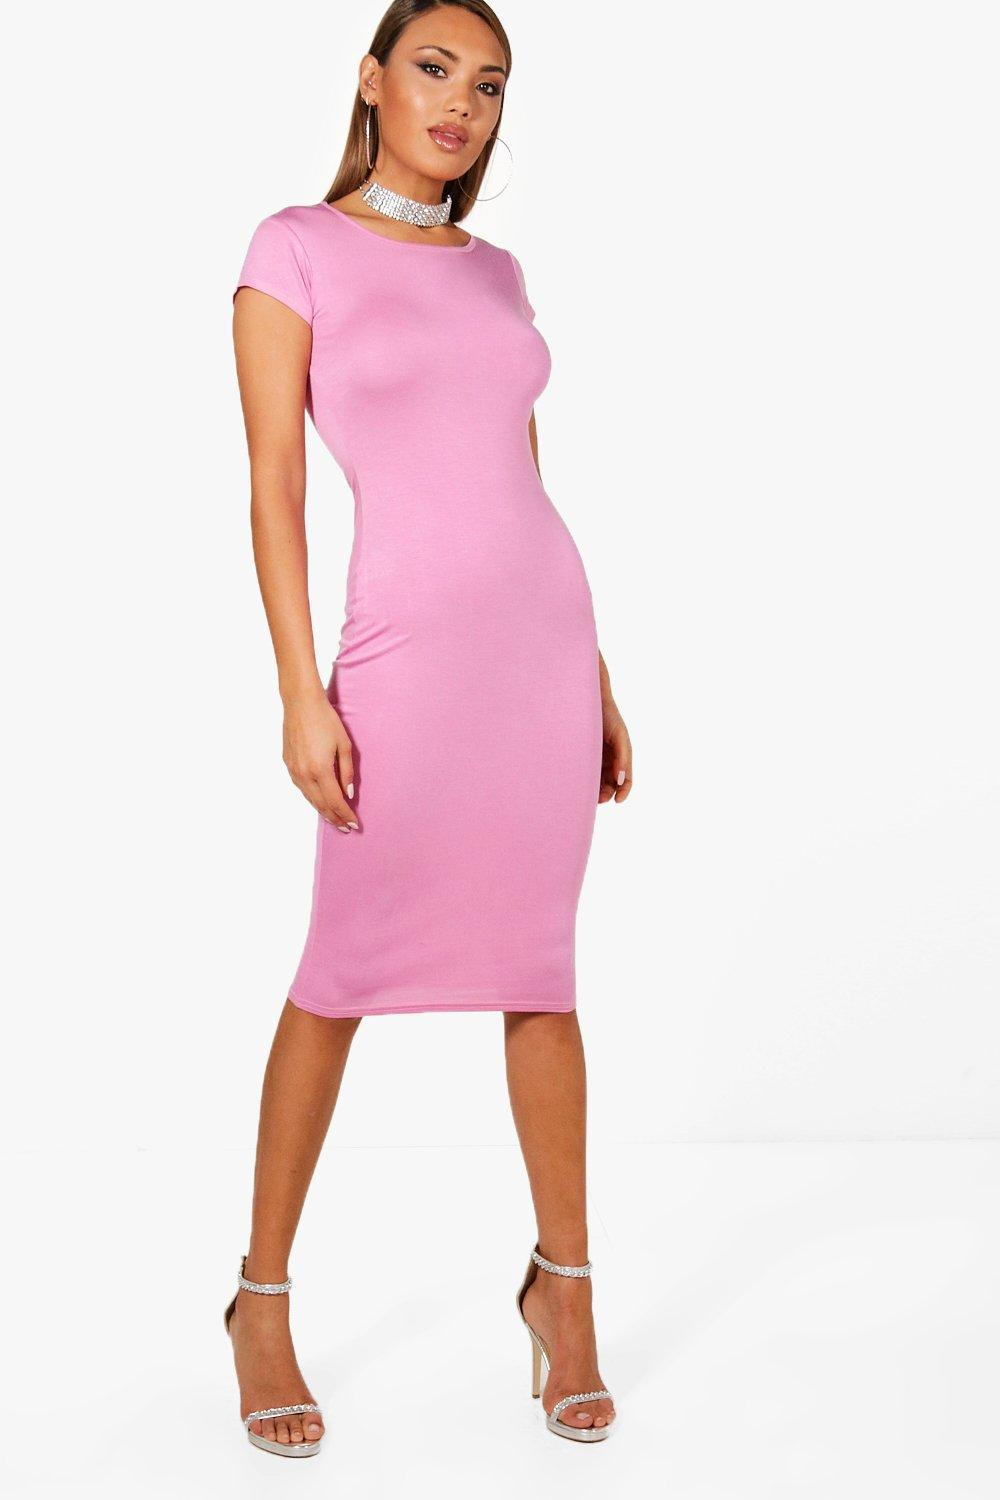 1134c0e5389 Boohoo Cara Cap Sleeve Midi Bodycon Dress in Pink - Lyst